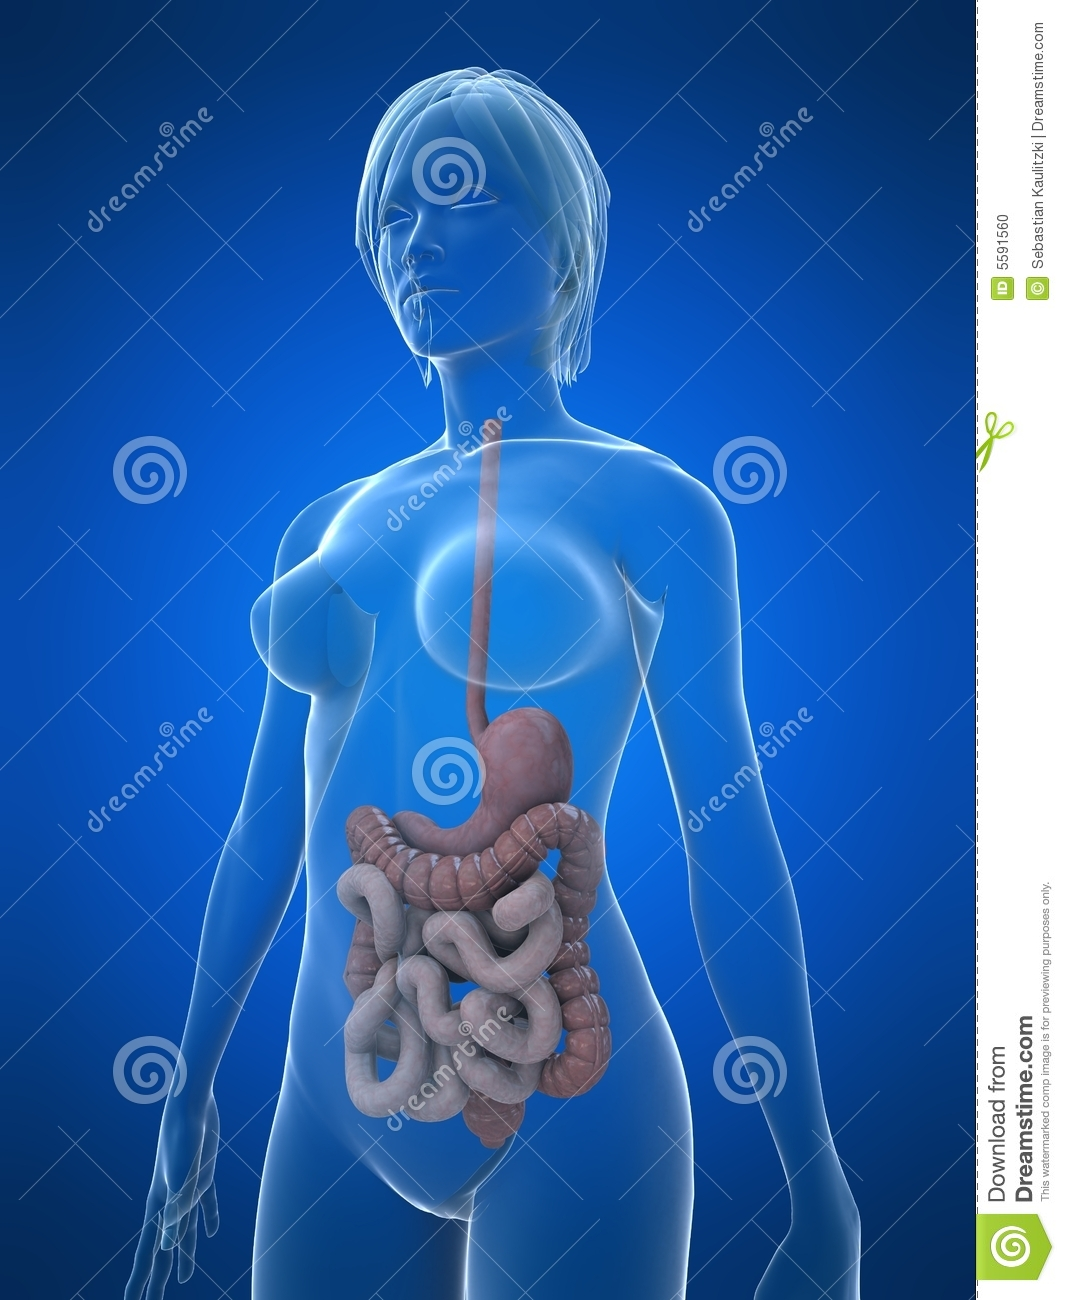 Female Digestive System Stock Photo - Image: 5591560